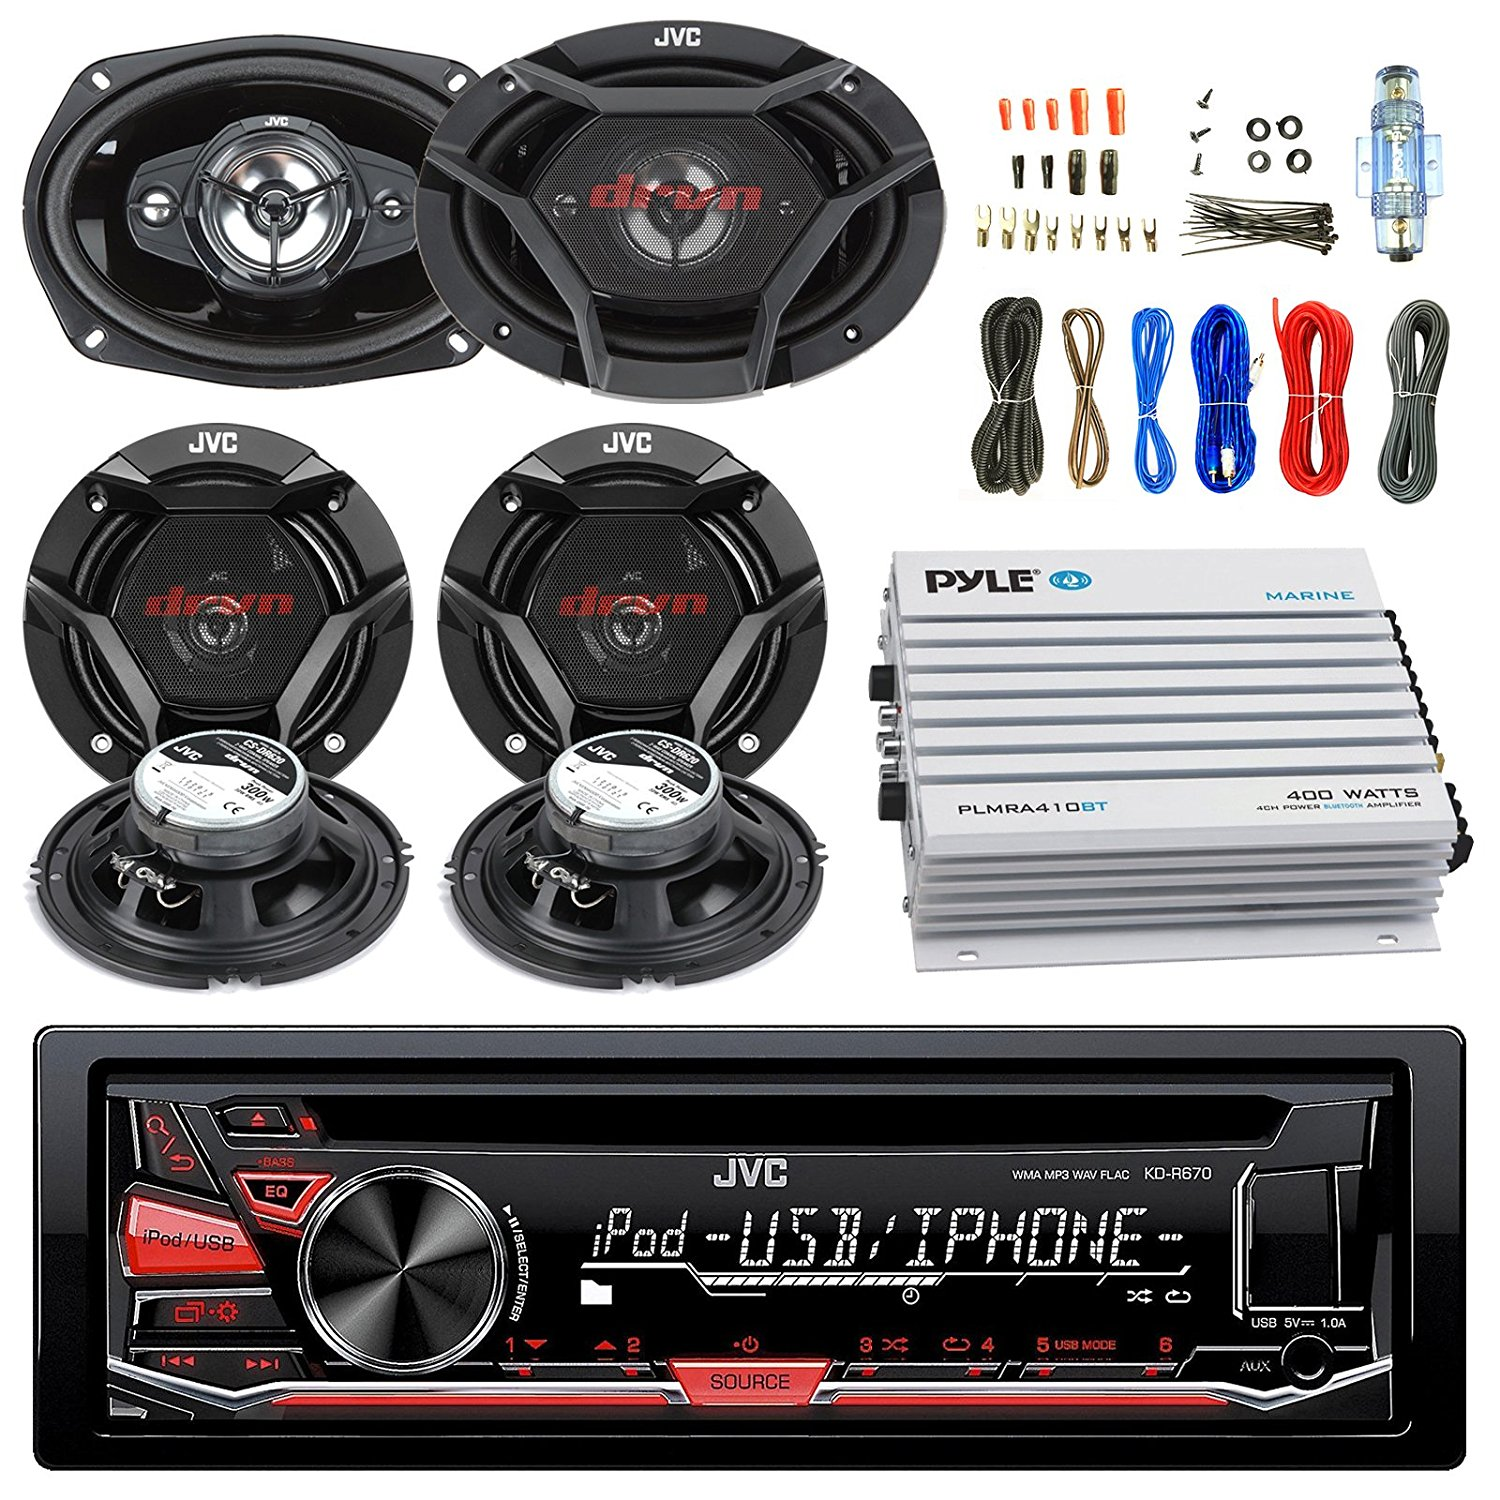 """JVC CD/MP3/WMA Receiver Bundle Combo With 2x CSDR6930 6x9"""" 3-Way Stereo Coaxial Speakers, 4x CSDR620 6.5"""" 2-Way Audio Speaker, 400w 4-Chan Bluetooth Amplifier w/ Enrock Installation Kit"""